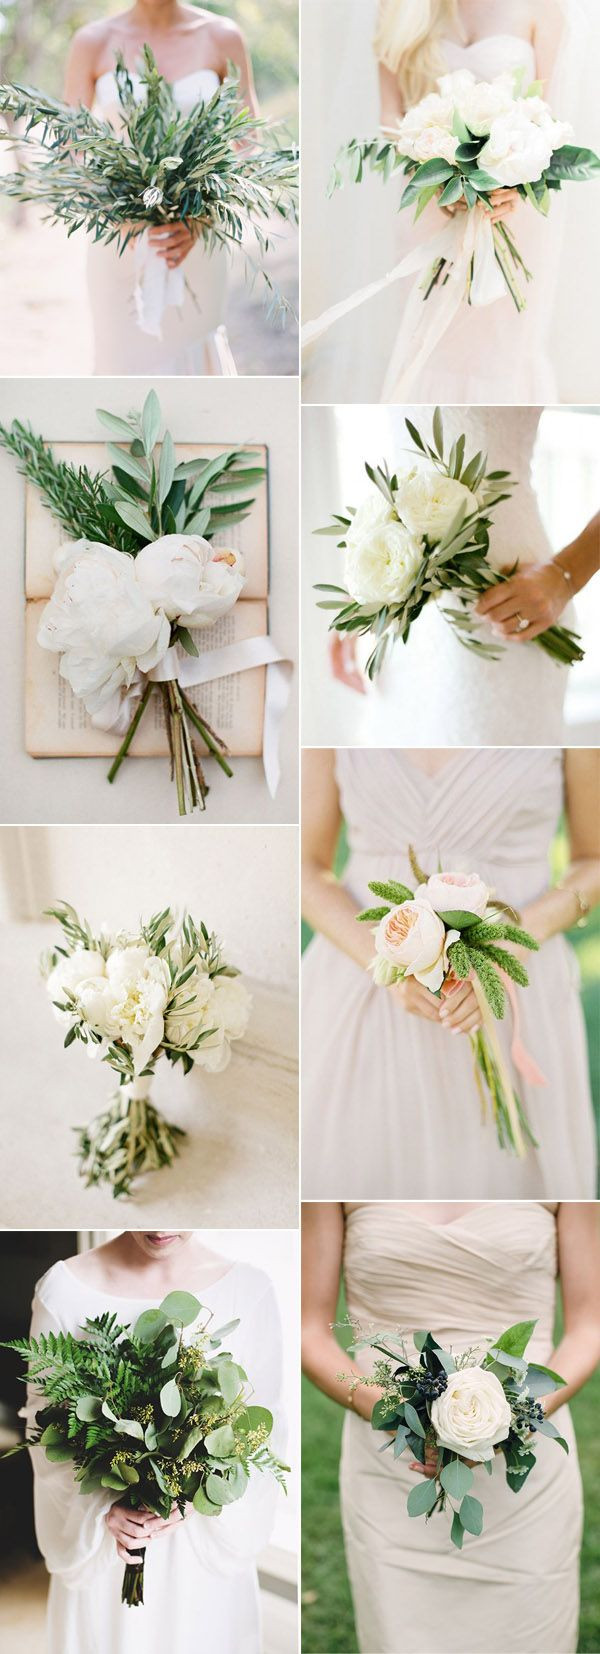 Best ideas about Simple Wedding Bouquets DIY . Save or Pin 2017 Trends Easy Diy Organic Minimalist Wedding Ideas Now.